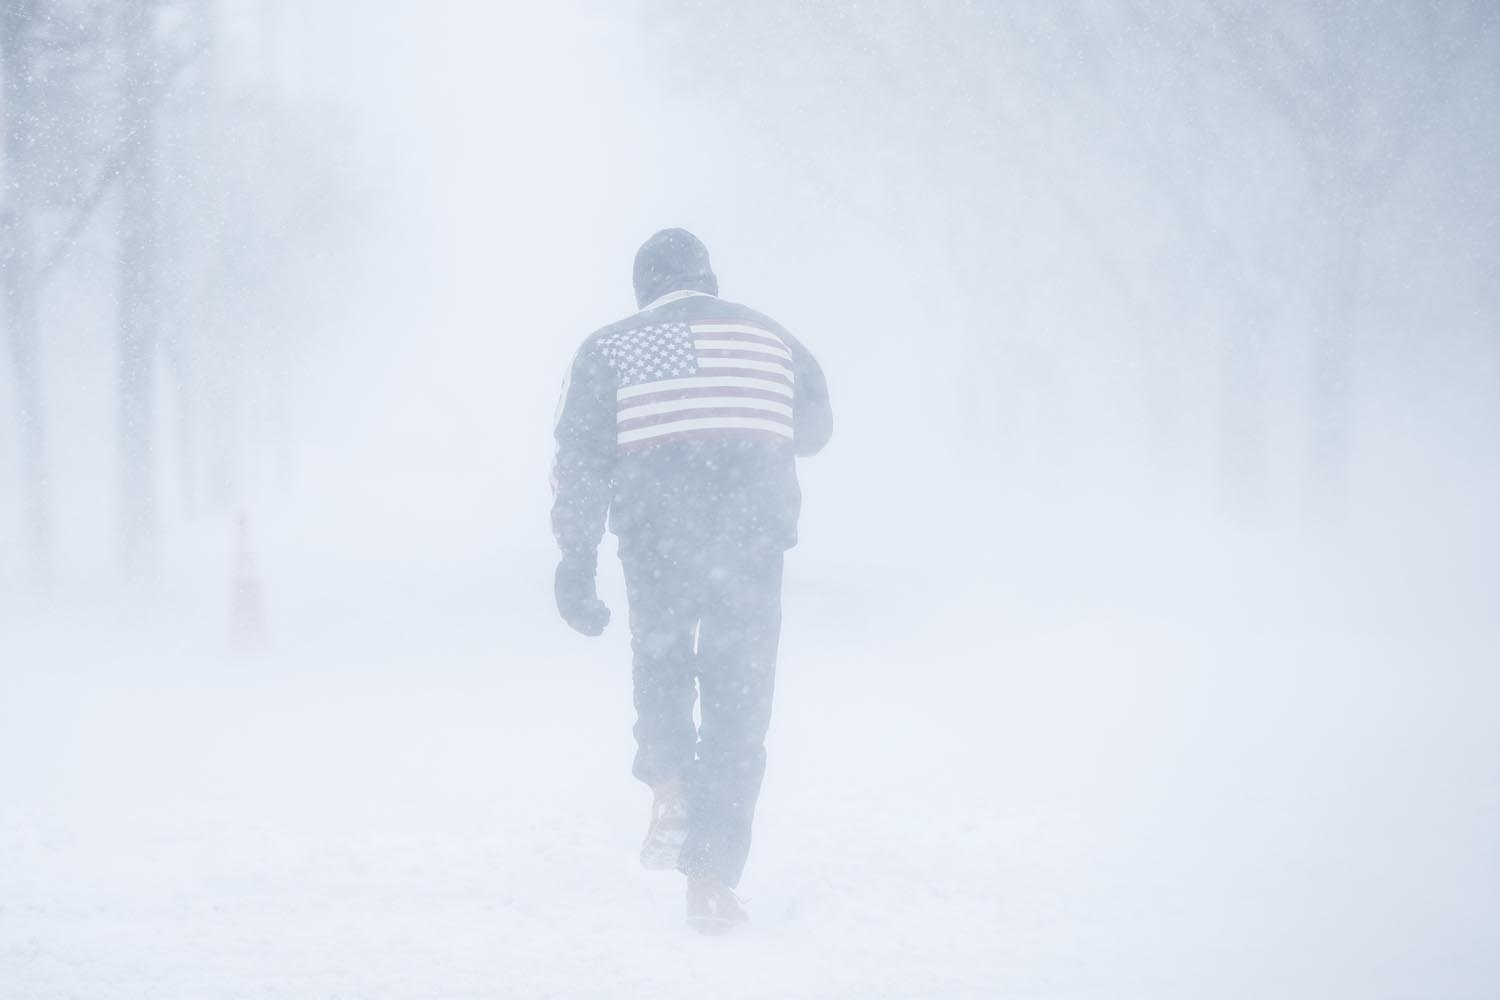 "<div class=""meta image-caption""><div class=""origin-logo origin-image ap""><span>AP</span></div><span class=""caption-text"">A man pushes his way through driving winds during a winter snowstorm in Atlantic City, N.J., Thursday, Jan. 4, 2018. (AP Photo/Matt Rourke)</span></div>"